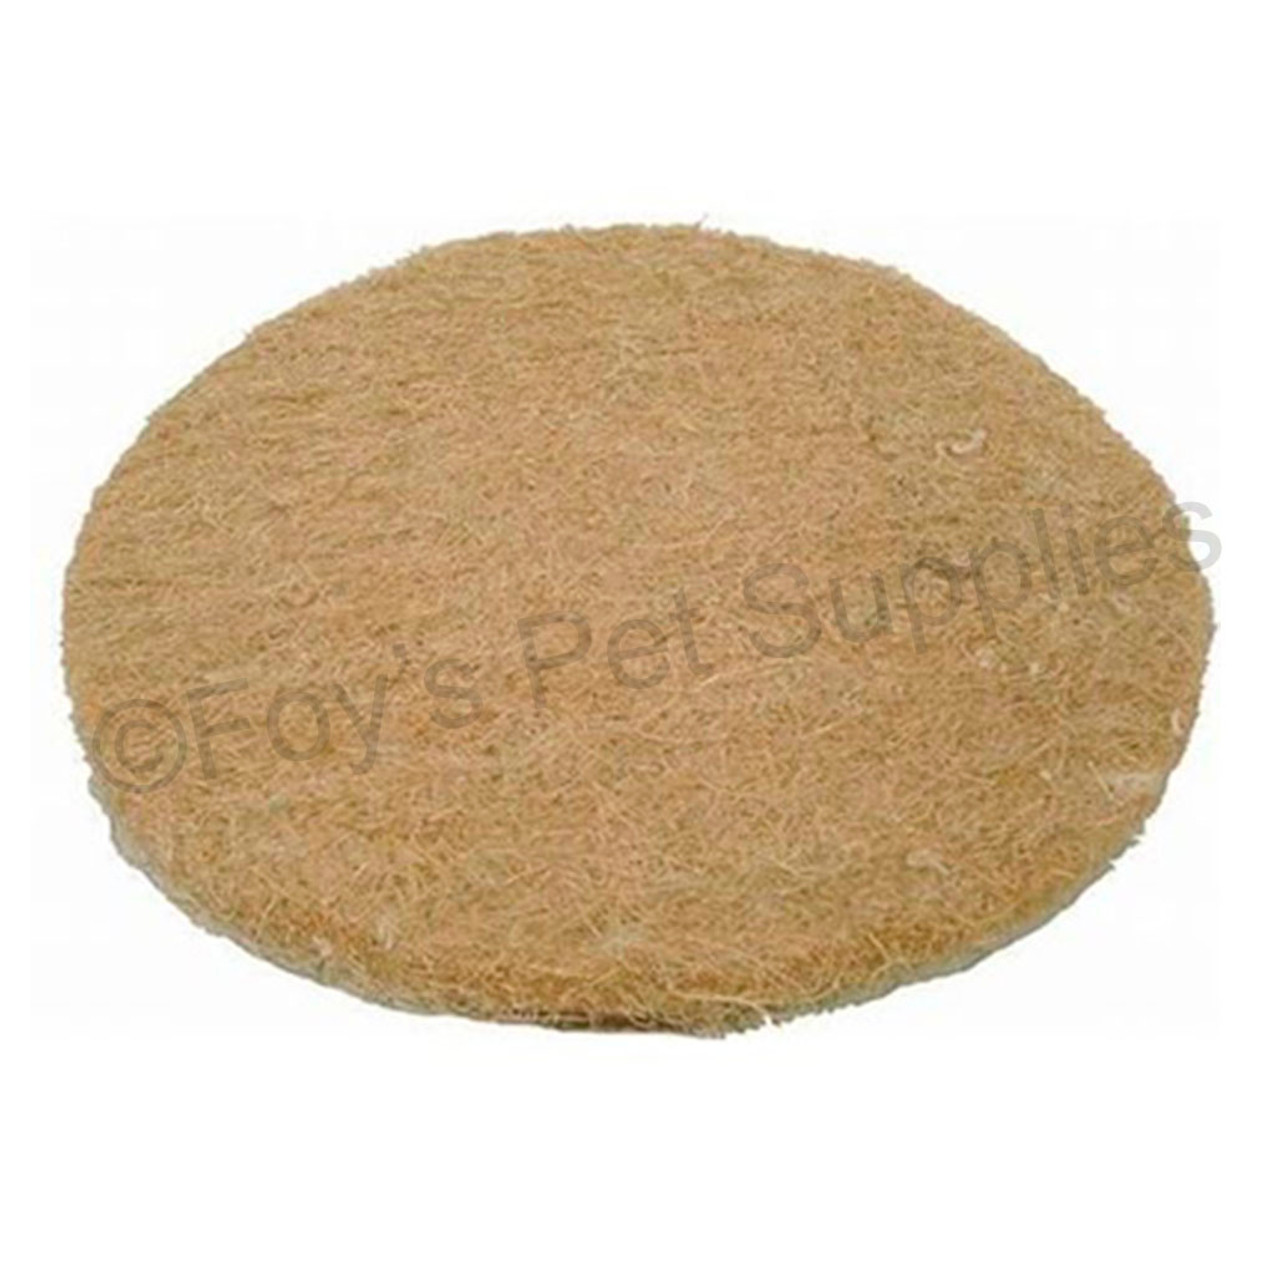 Small Coconut Fiber Nest Pads 7 in. - 10 Pack